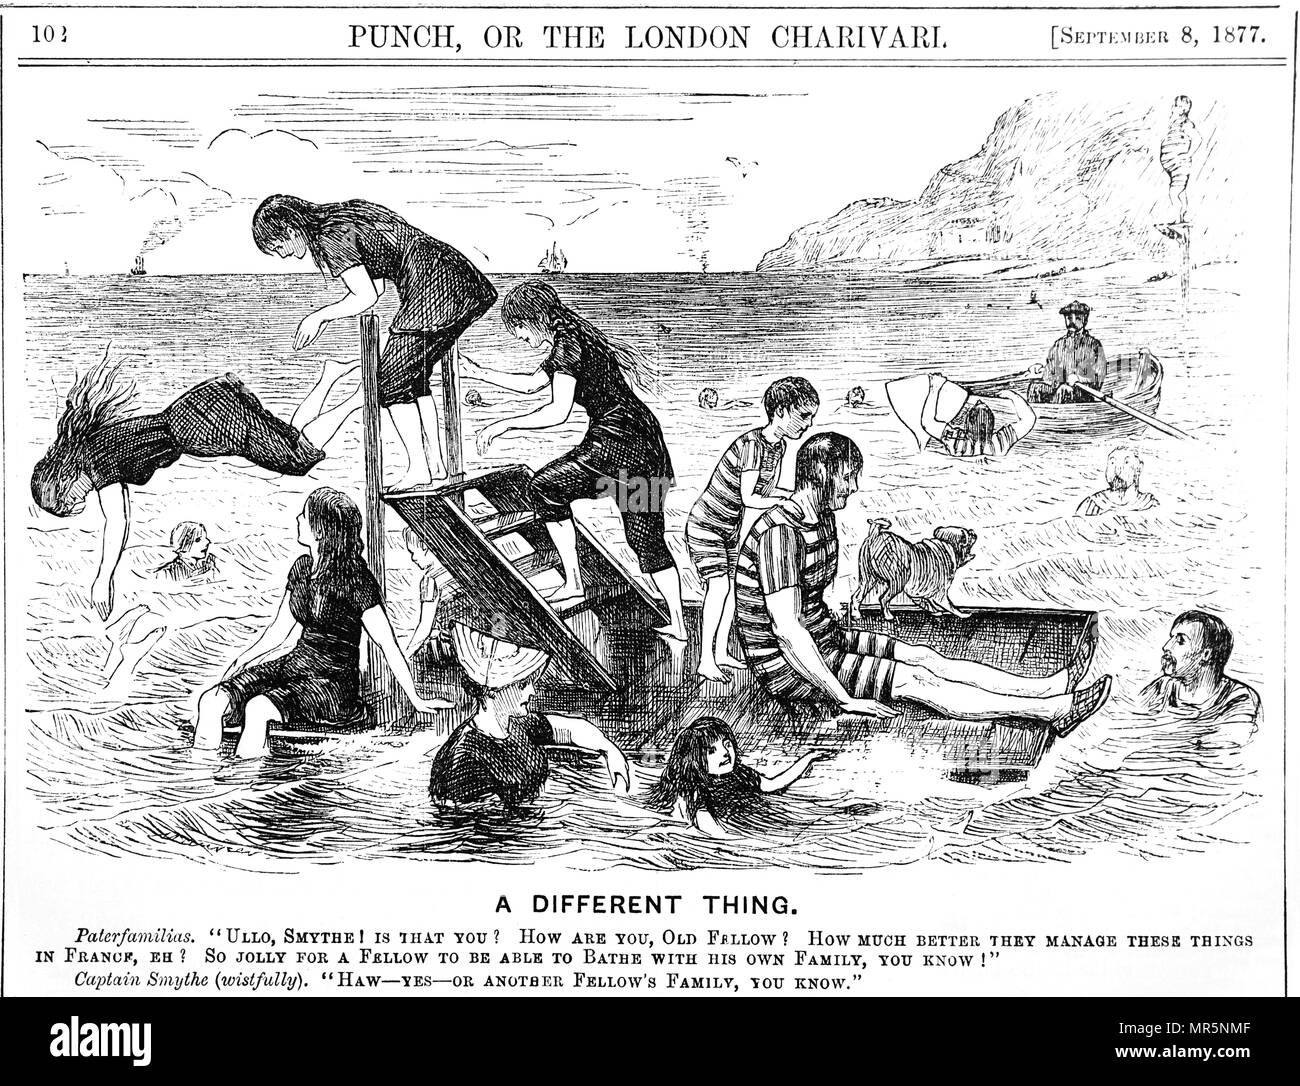 Cartoon depicting holidaymakers enjoying a seaside holiday in France. Illustrated by George du Maurier (1834-1896) a Franco-British cartoonist and author. Dated 19th century - Stock Image